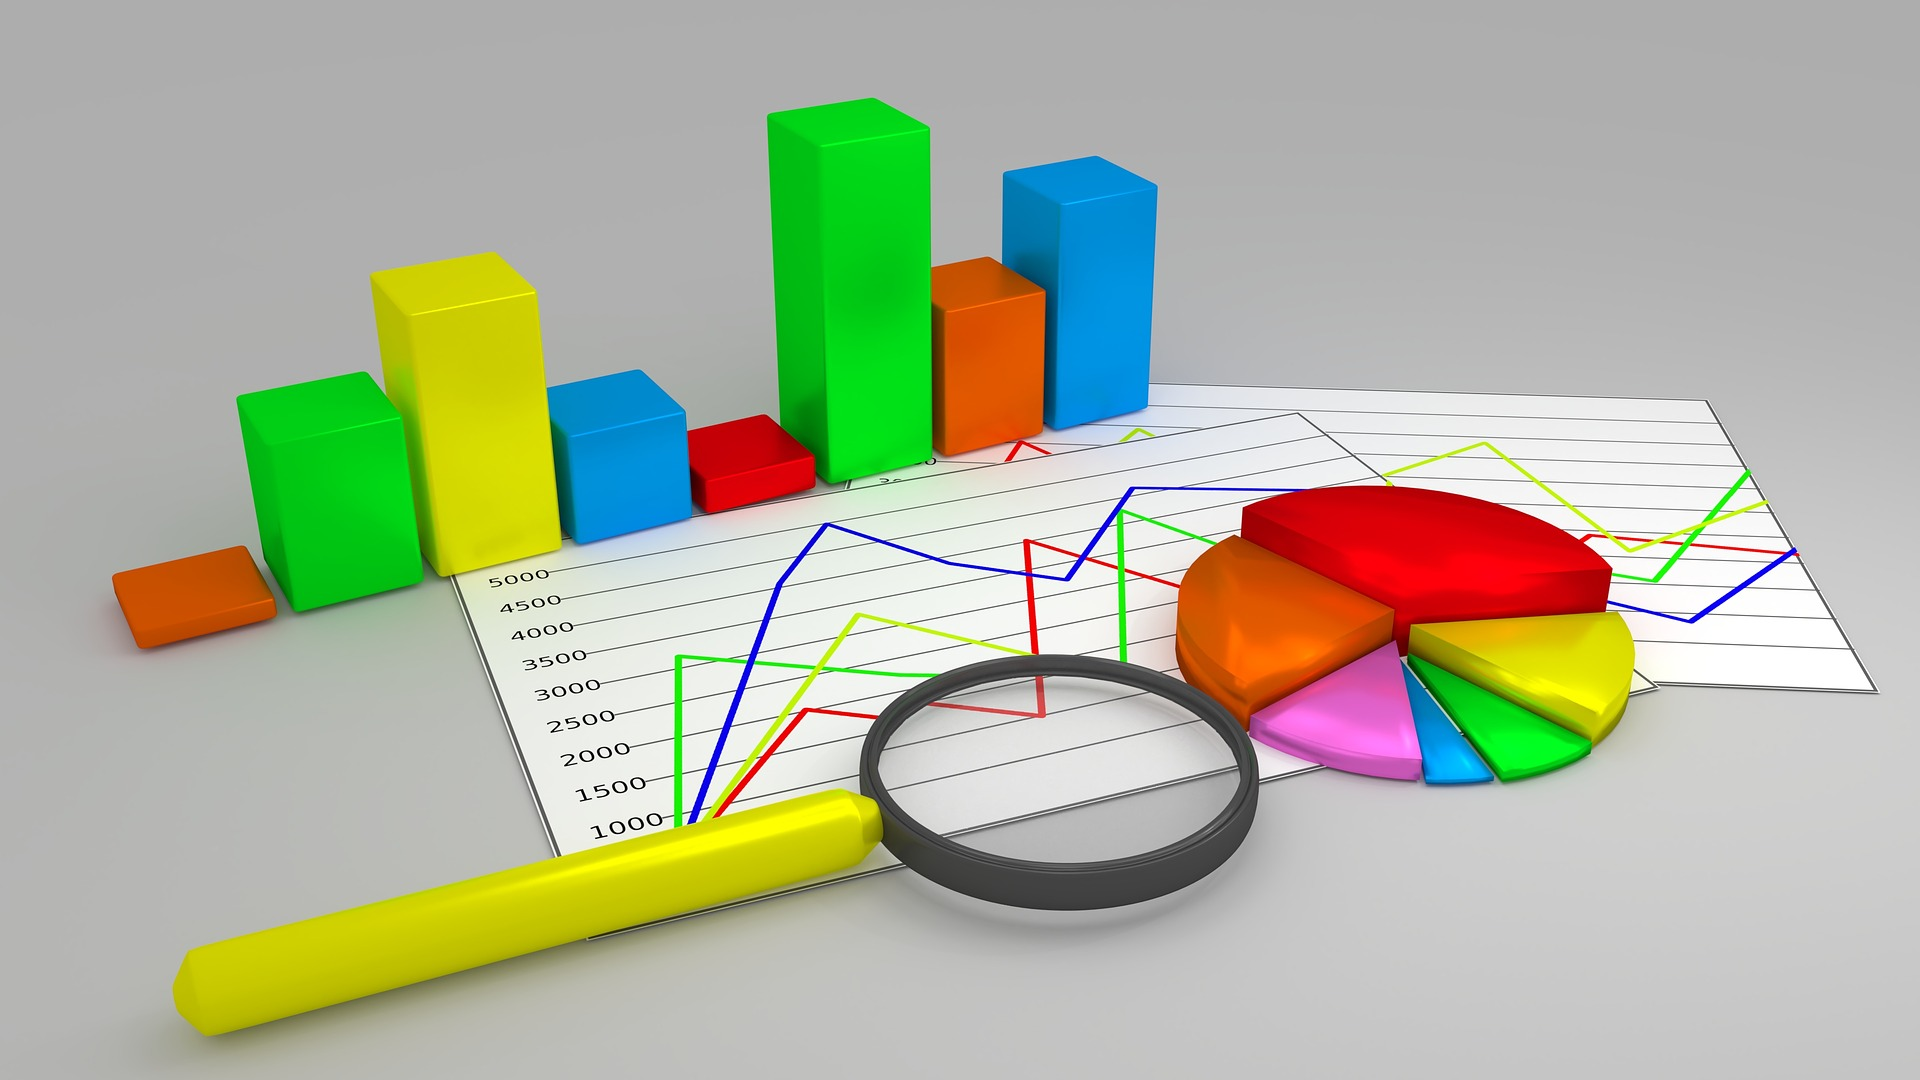 Pitching analyst firms effectively